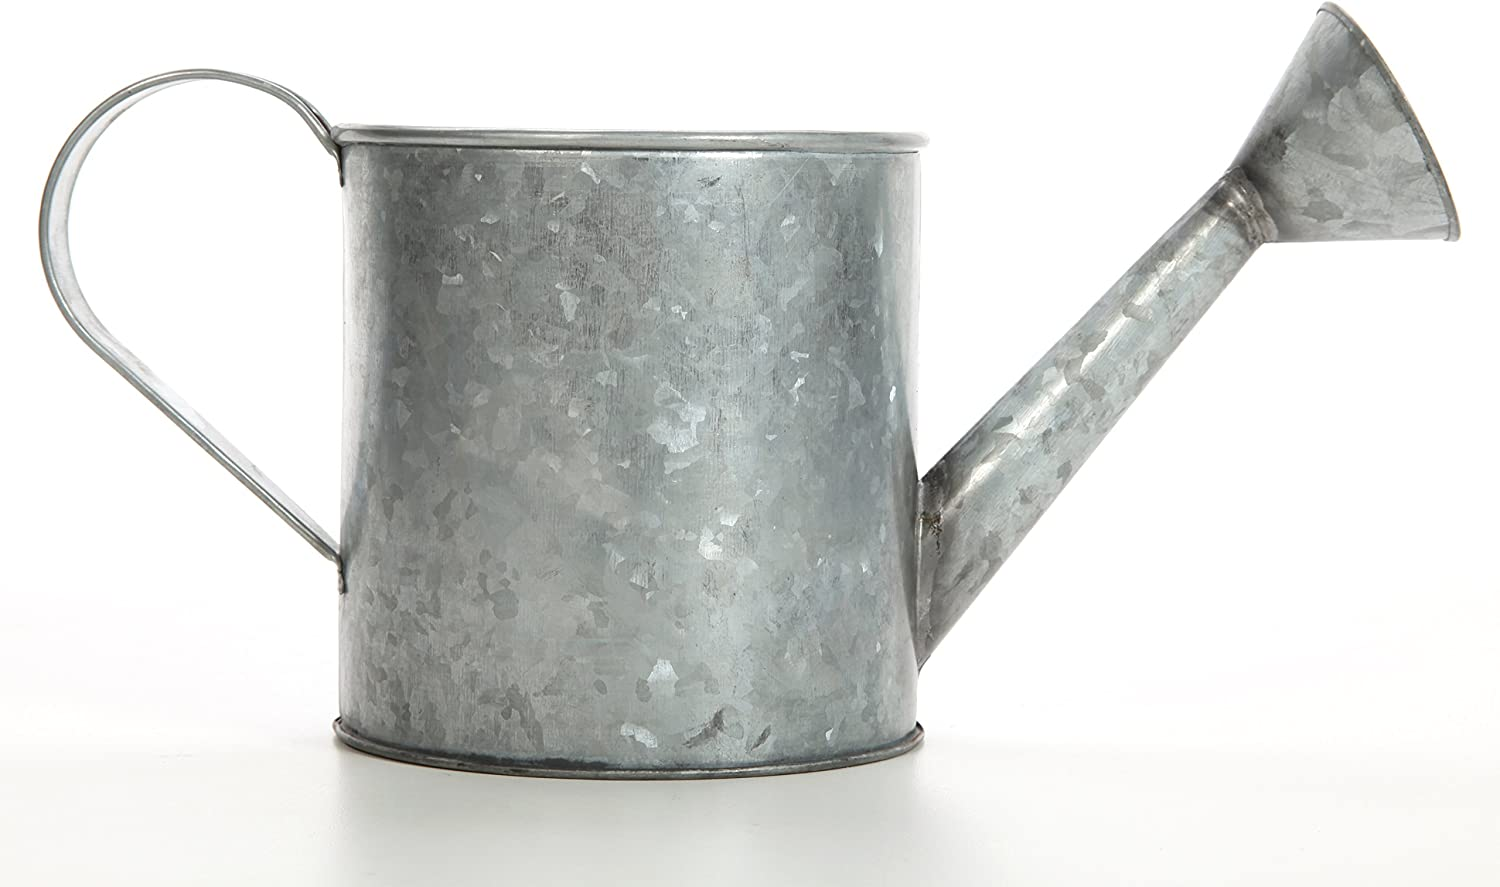 Hosley 7 Inch High Galvanized Large Watering Can. Ideal Gift for Weddings Parties Craft DYI Spa Dried Flower Arrangements Outside Garden Planter for Decorative onlyO4